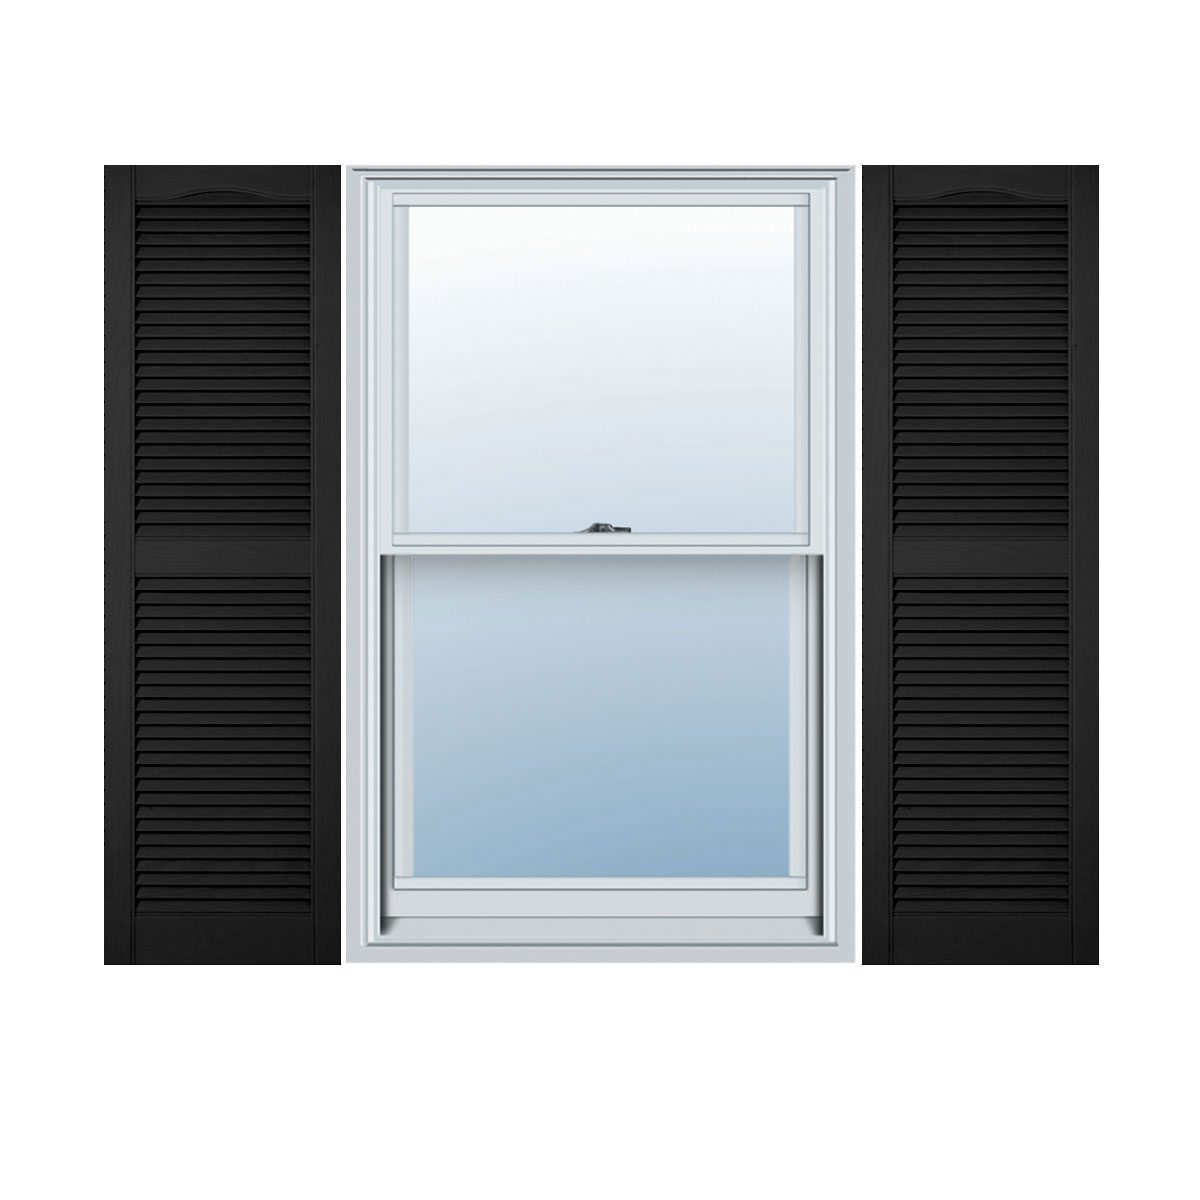 1 Pair 14.5 x 67 166 Midnight Blue Mid America Cathedral Open Louver Vinyl Standard Shutter